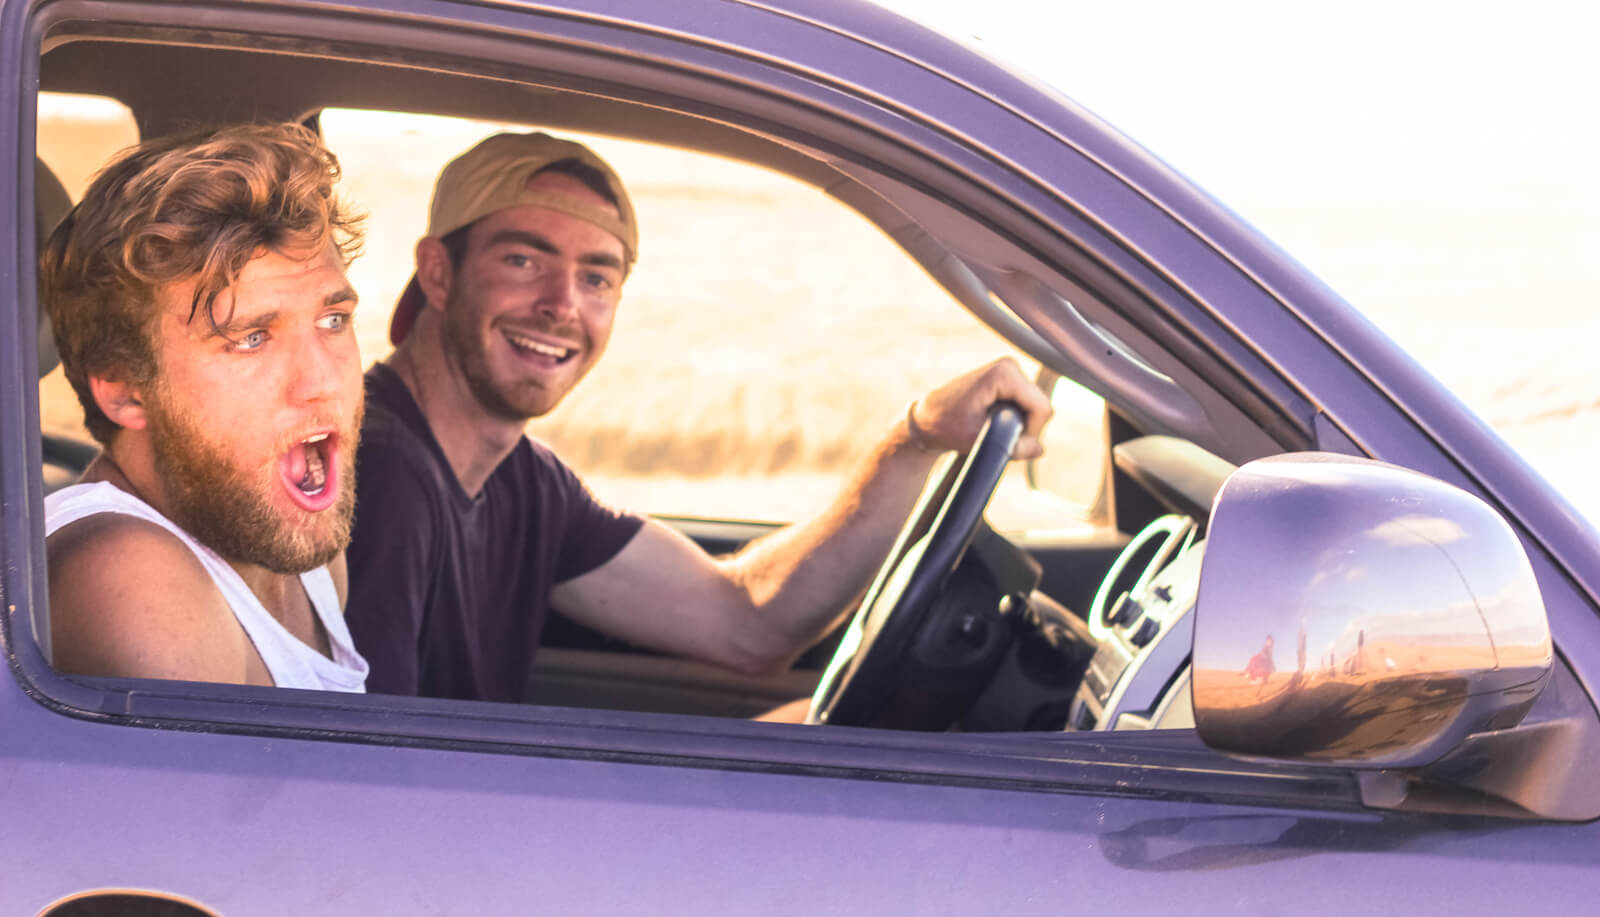 Does lowering your car affect insurance?